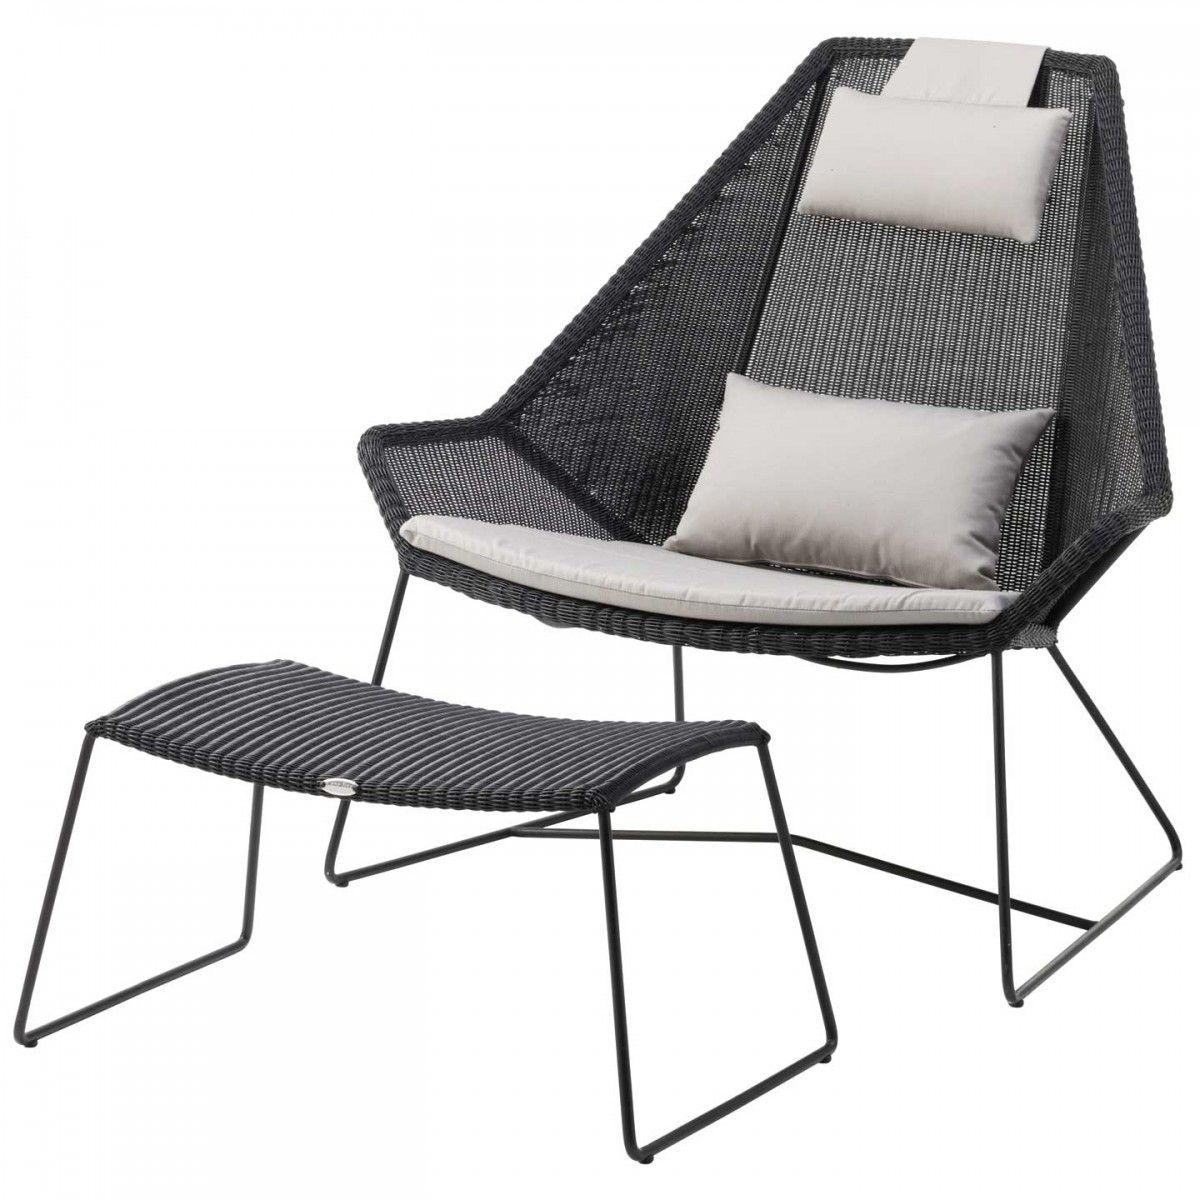 Breeze High Back Lounge Chair Cane Line Outdoor Furniture Aram Store Lounge Chair Outdoor Contemporary Outdoor Furniture Modern Outdoor Dining Chairs